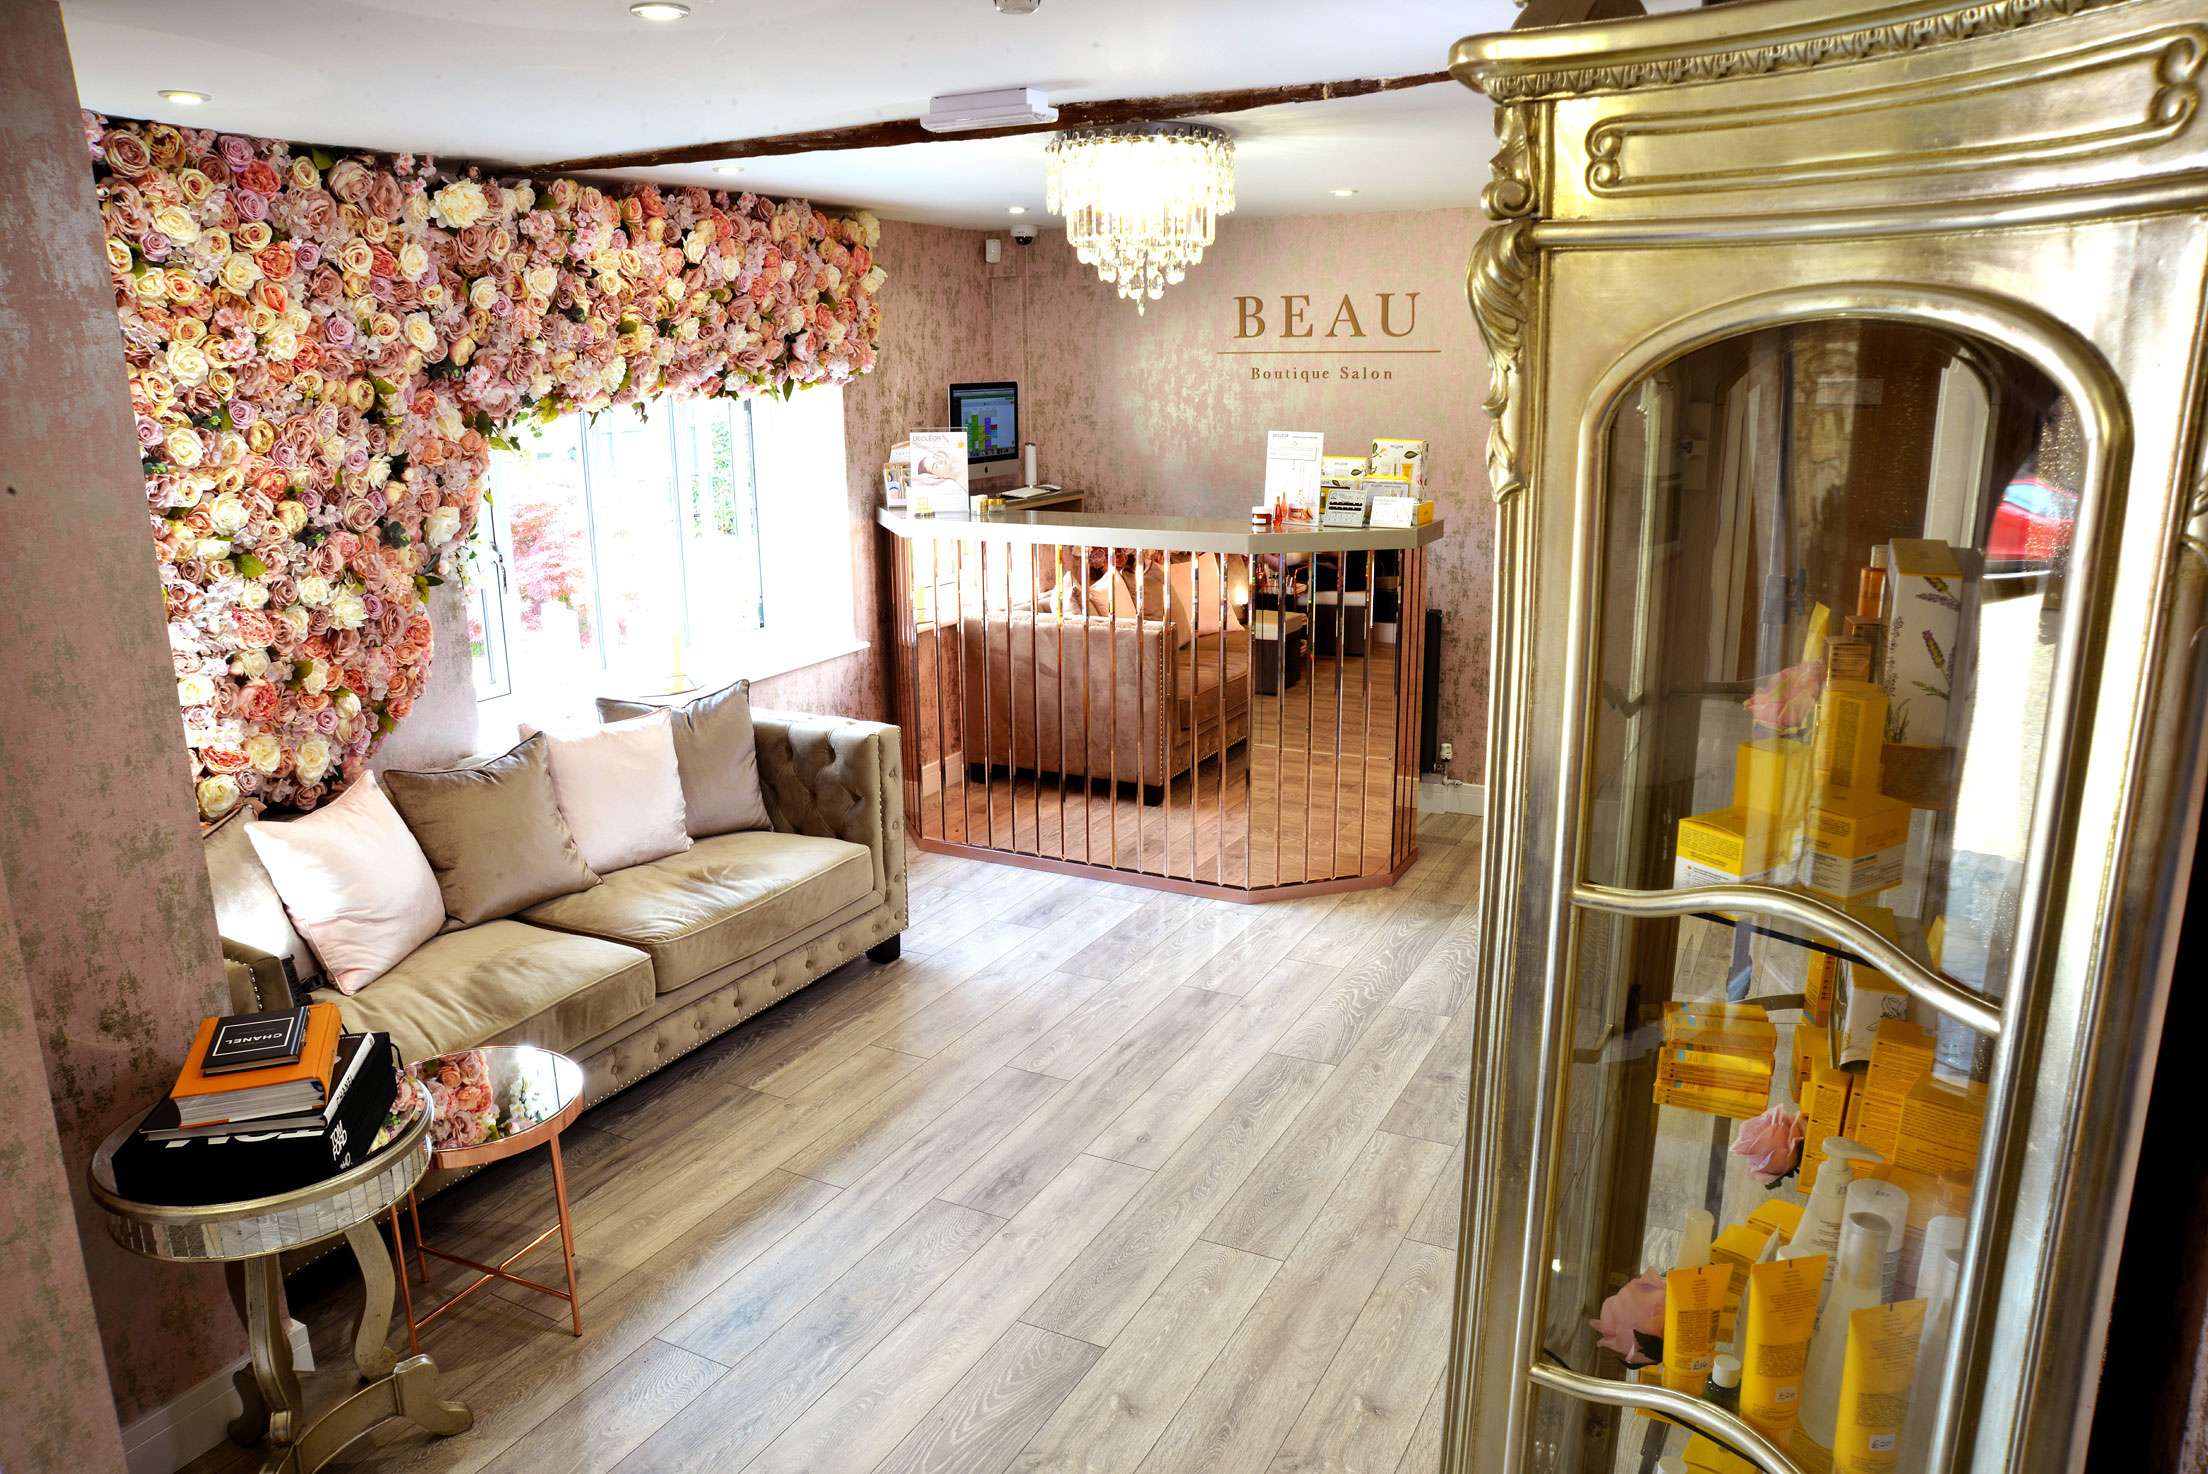 Beau Boutique Salon Reception Waiting Area